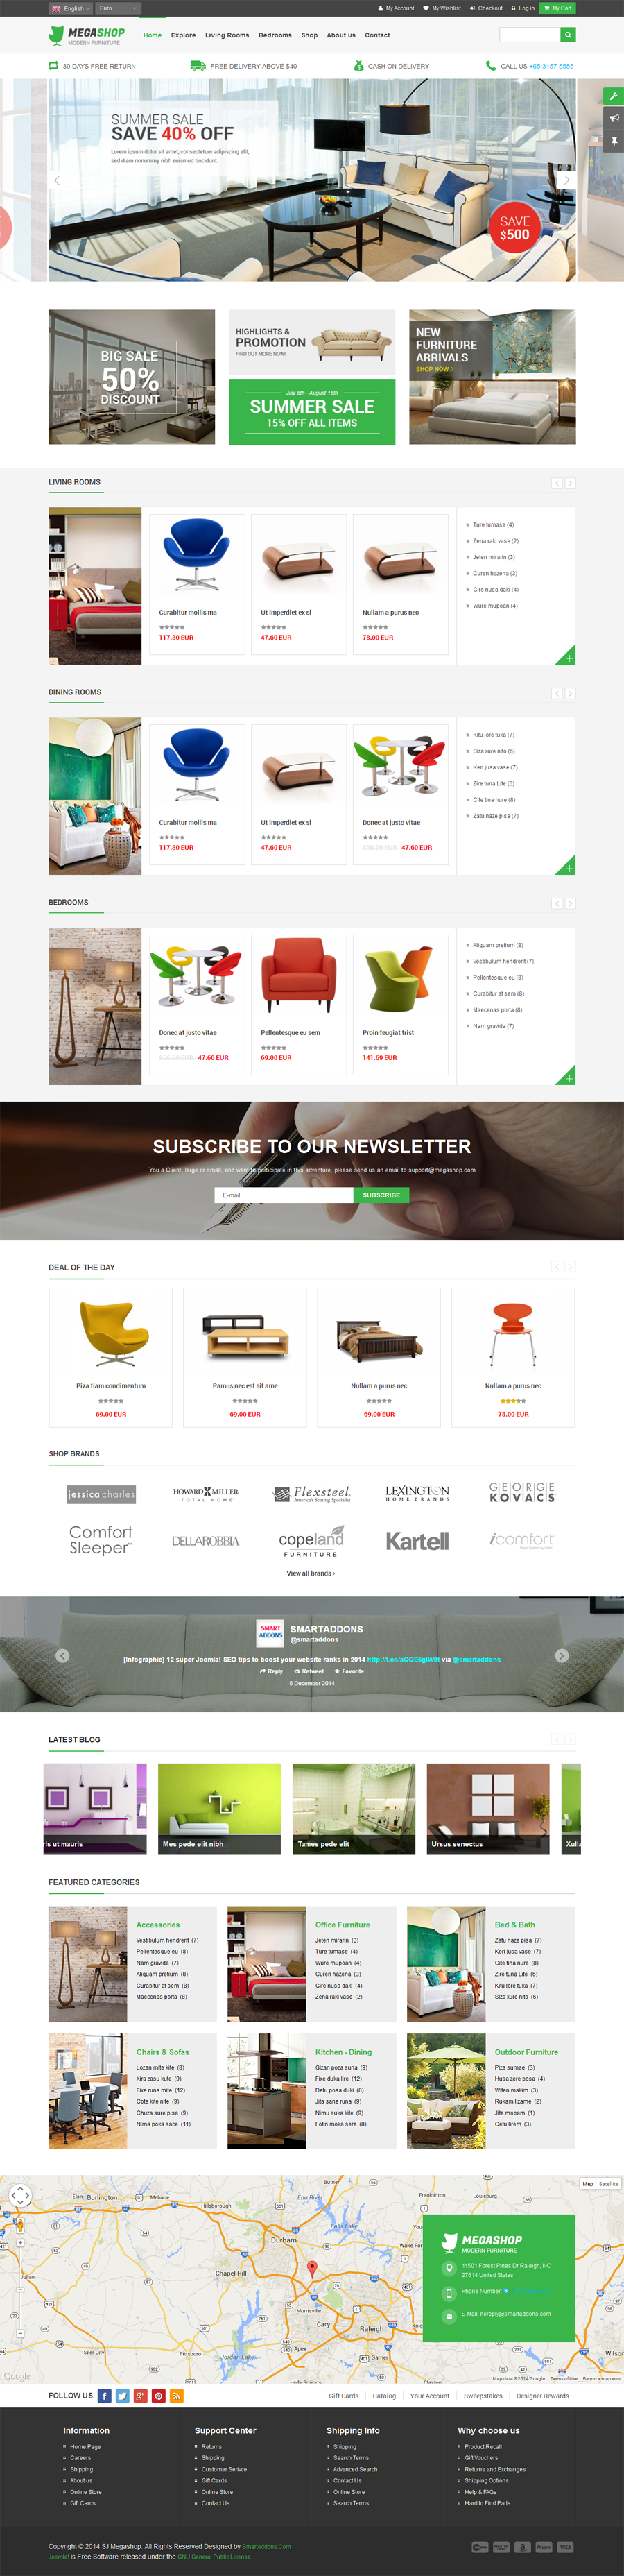 SJ MegaShop - Responsive eCommerce Joomla Template - 02_index.png